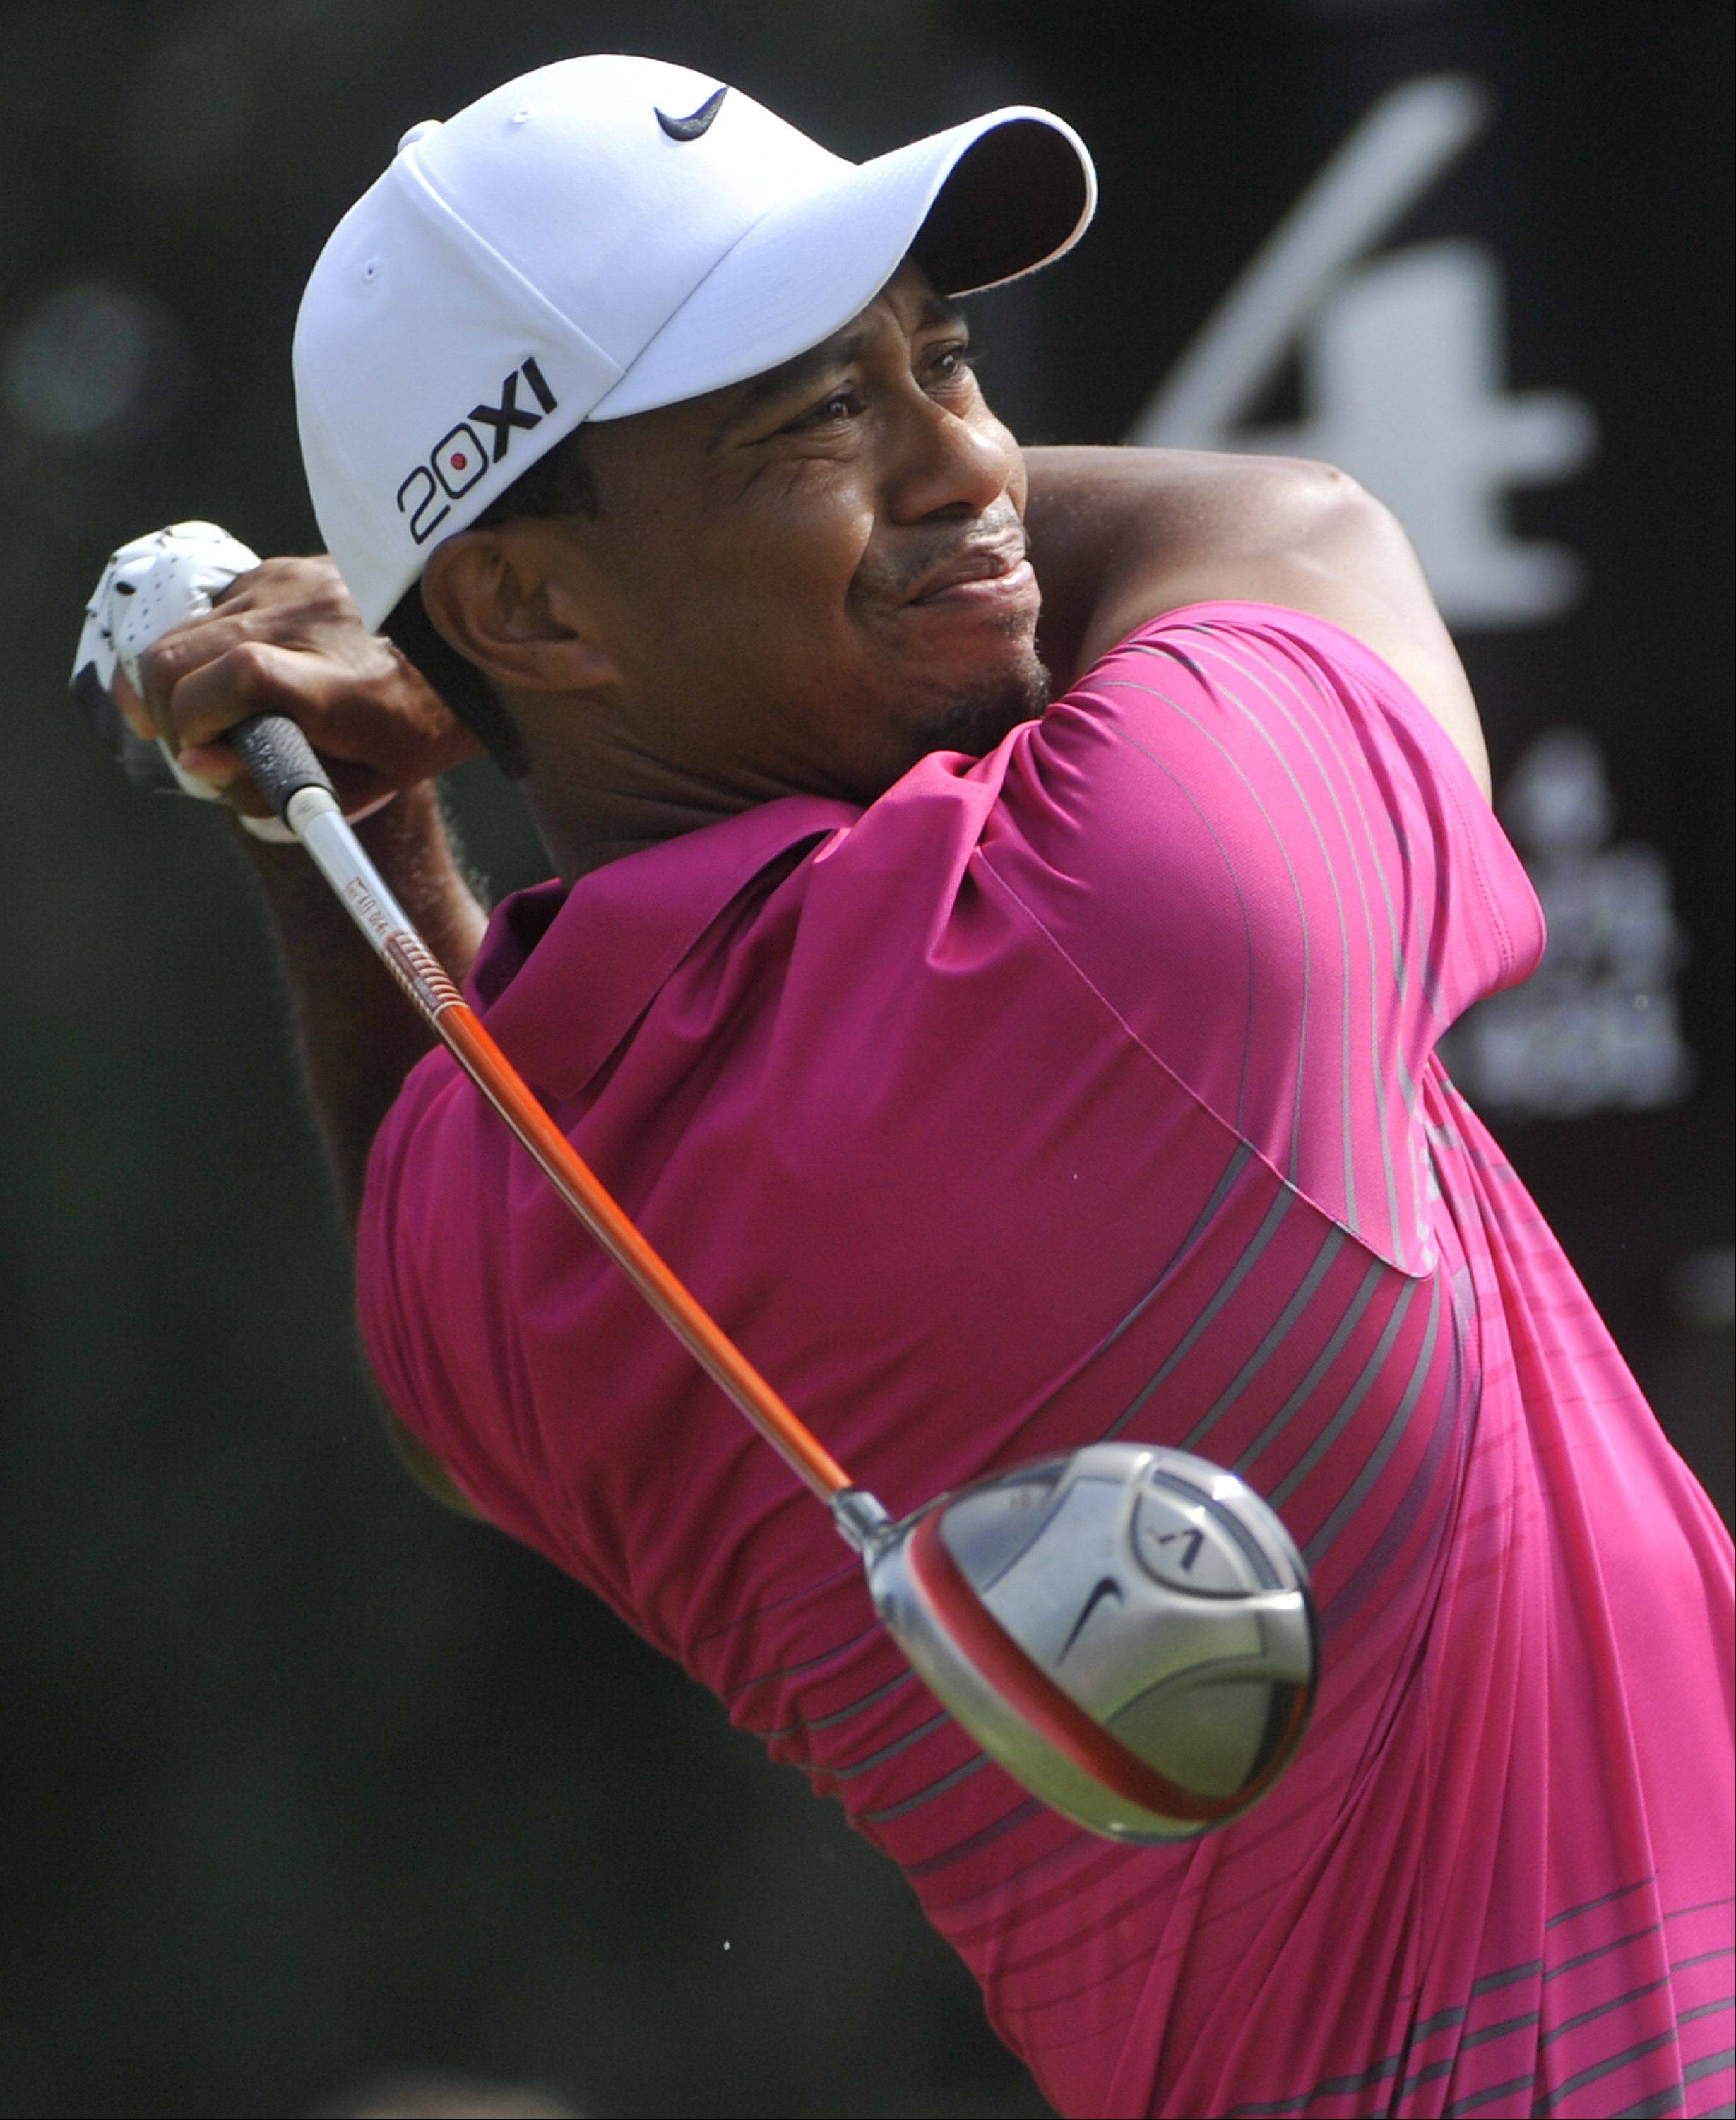 Tiger Woods hits his tee shot on the fourth hole, during the third round of the Bridgestone Invitational golf tournament, Saturday, Aug. 4, 2012, in Akron, Ohio.